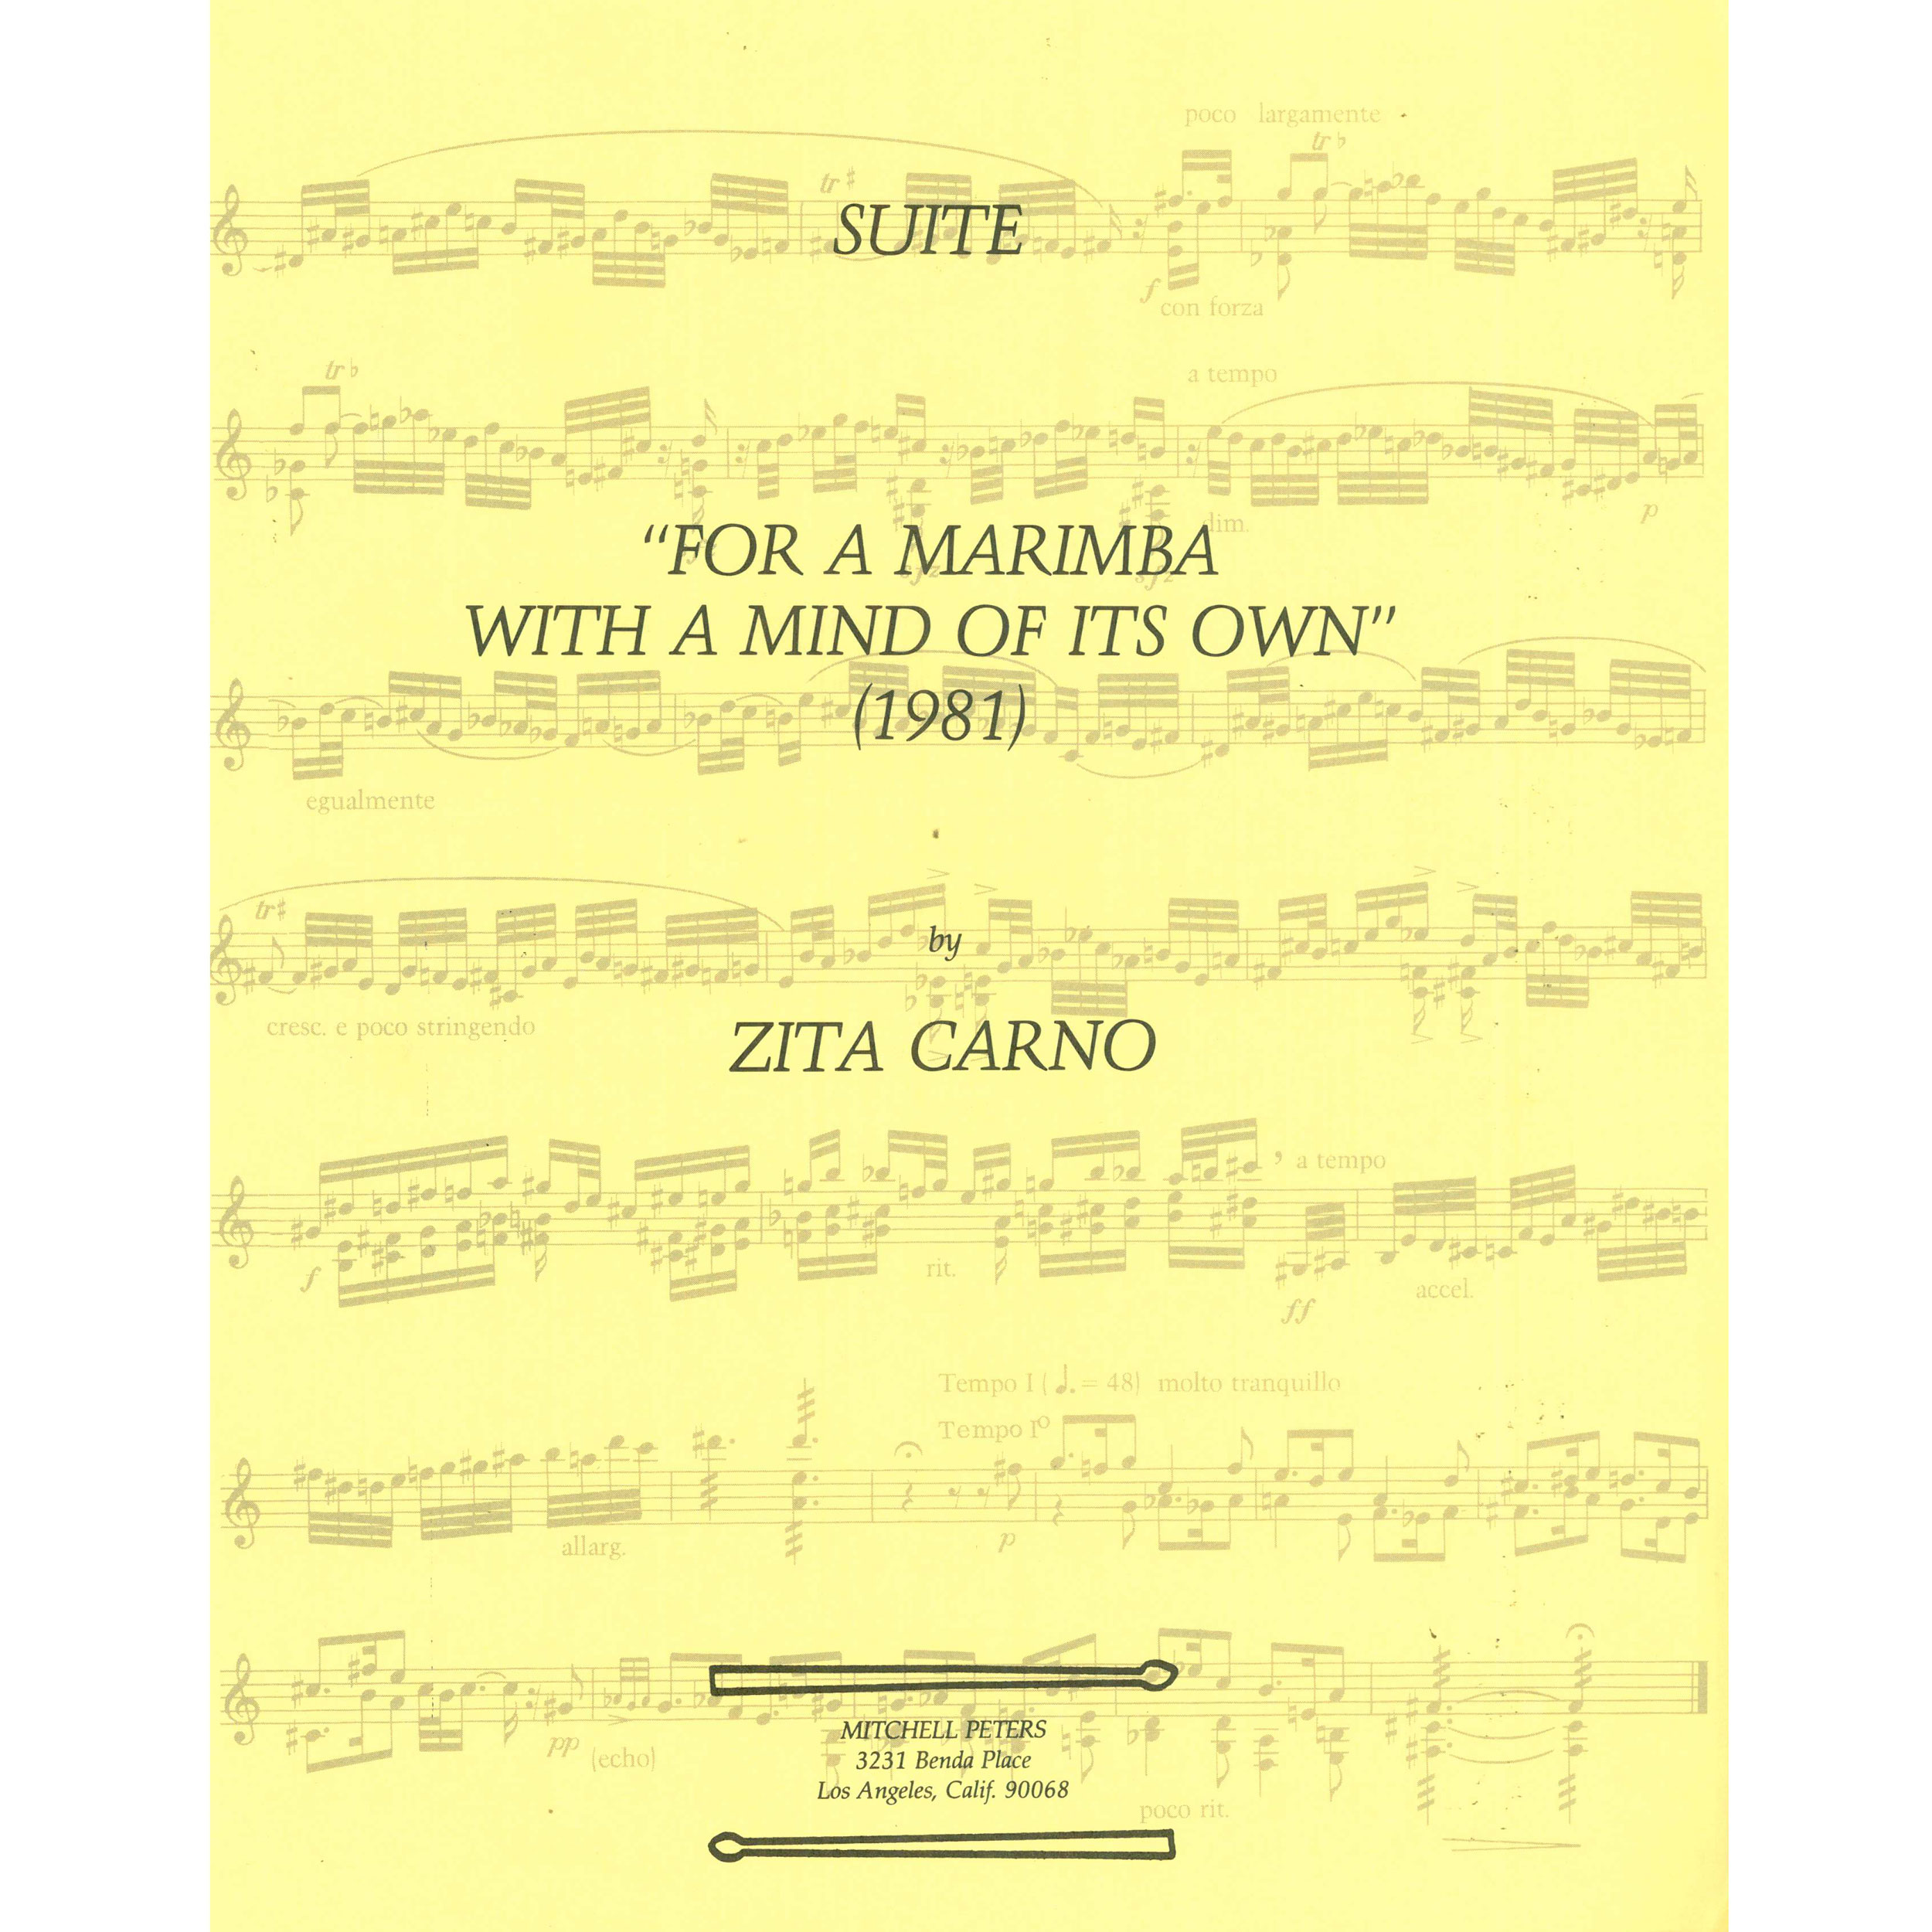 For a Marimba with a Mind of its Own by Zito Carno